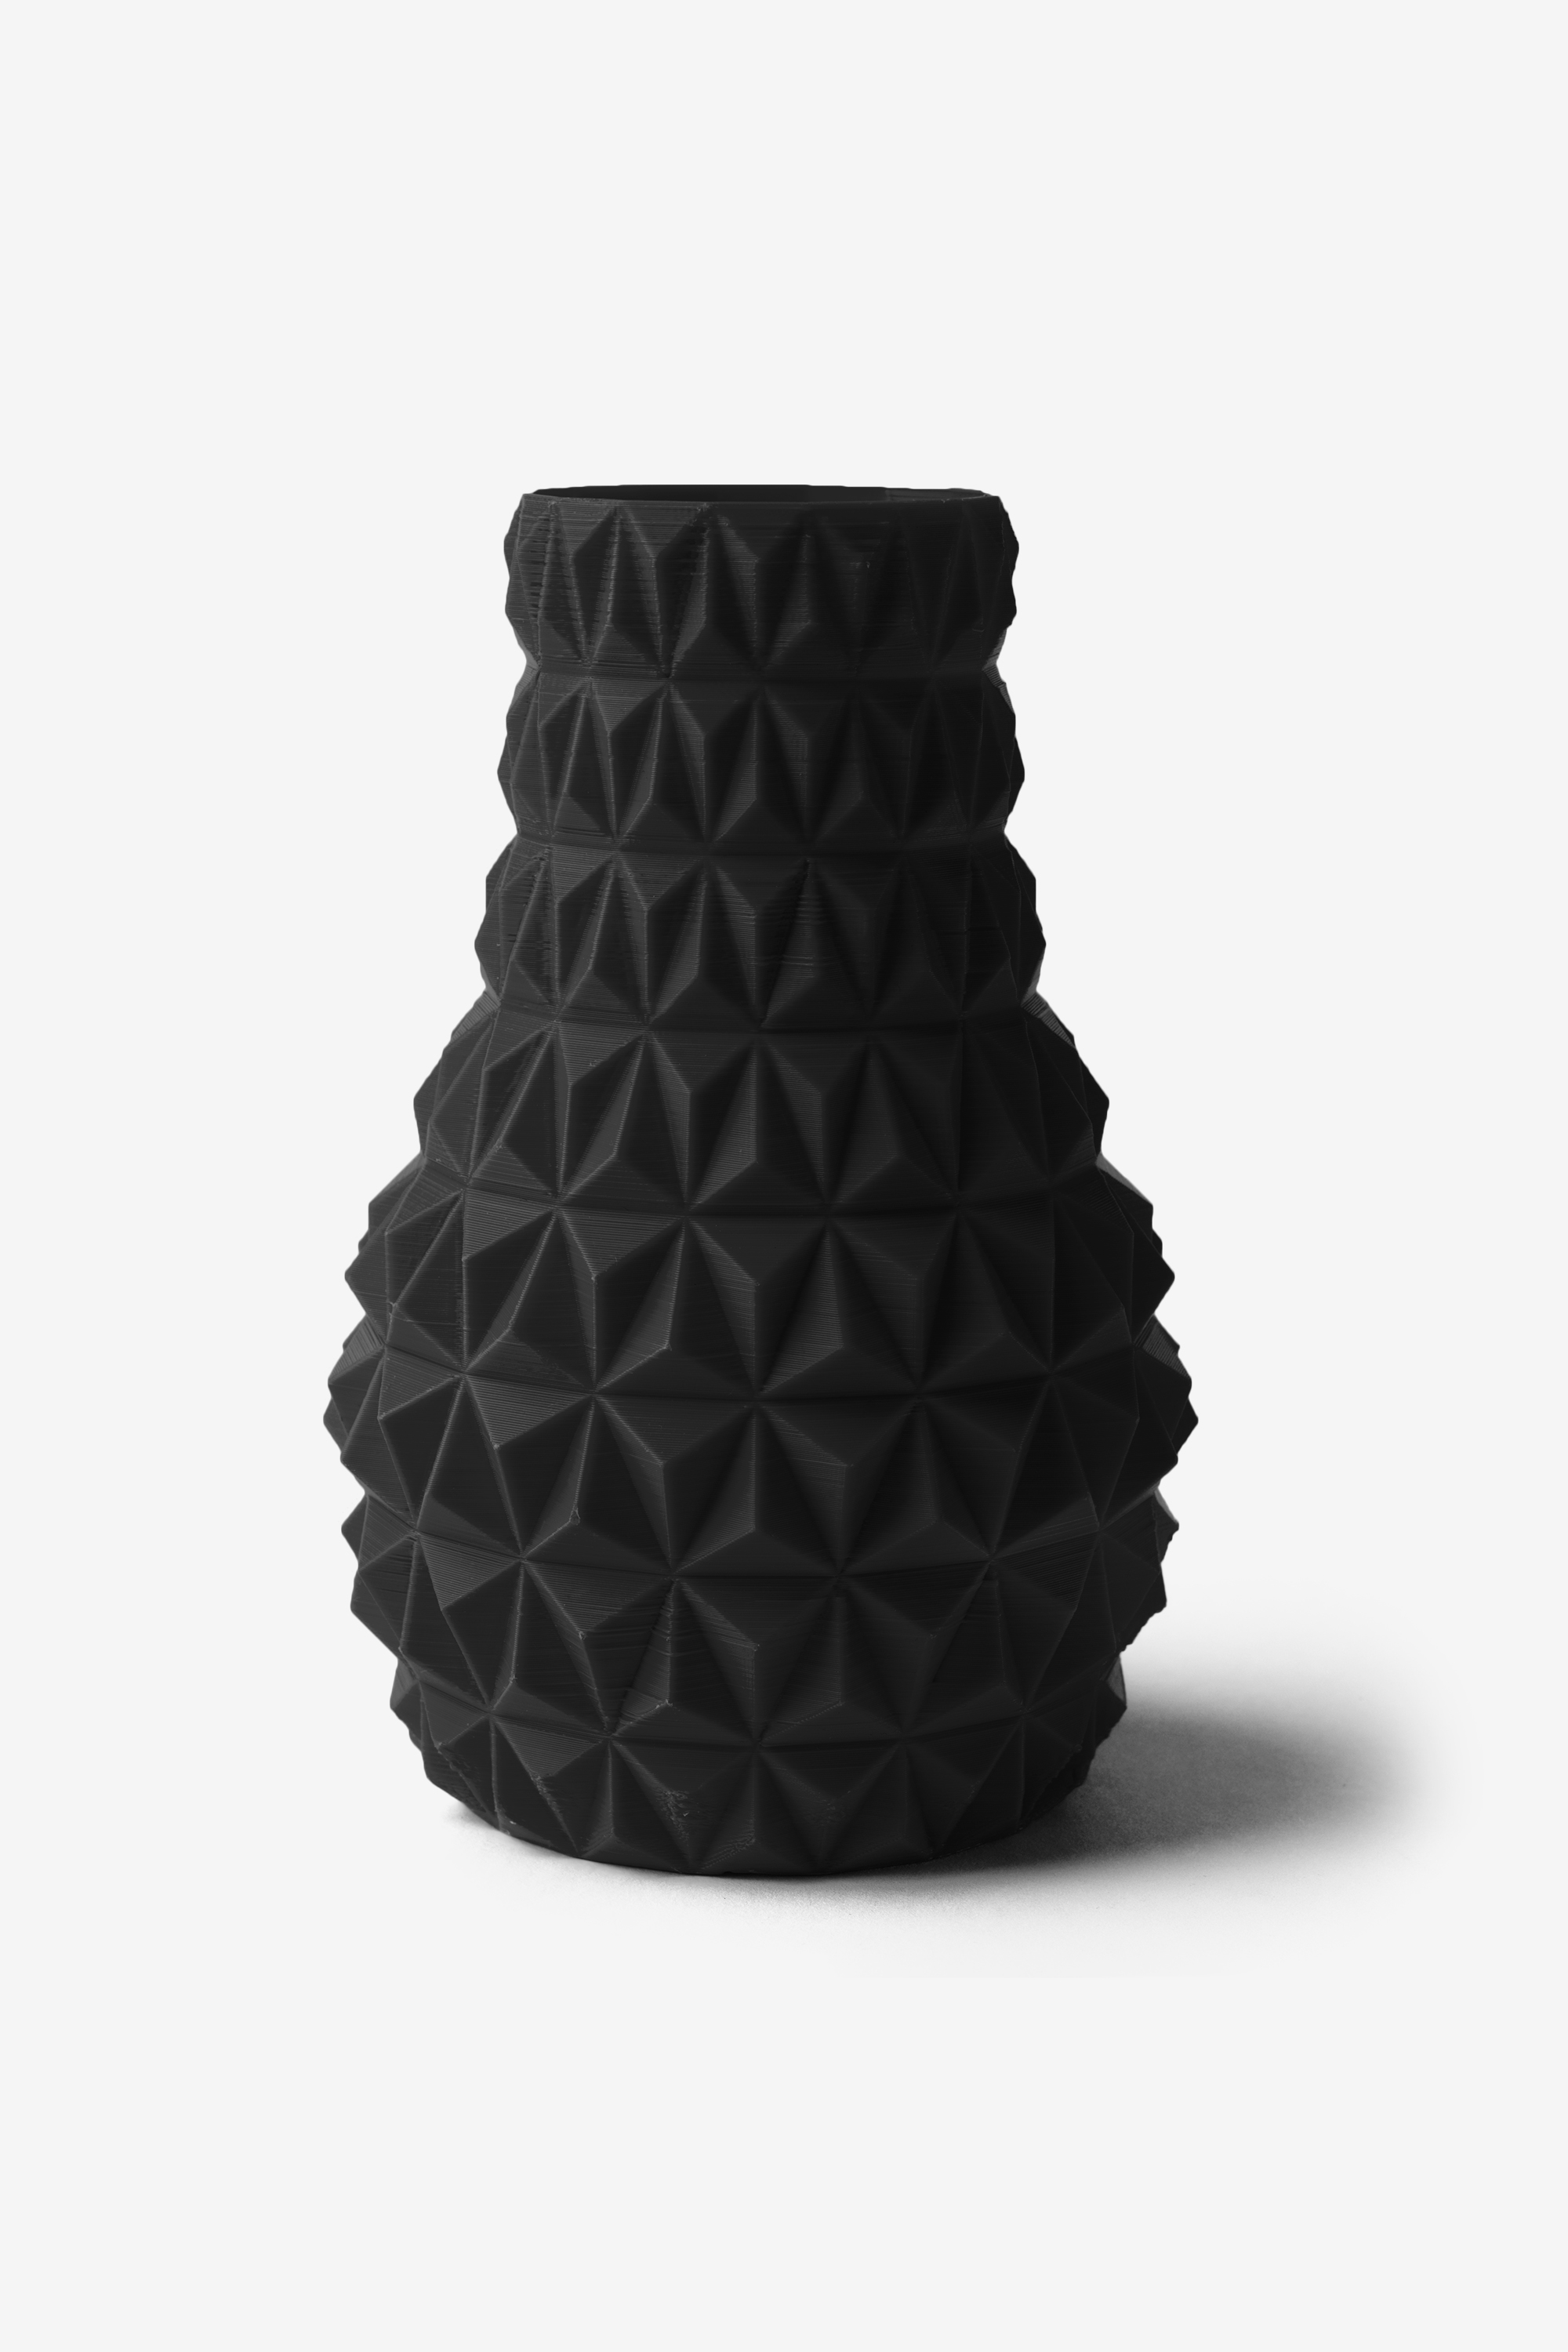 3D Printed Faceted Vase in Black, Design by Matthijs Kok for Cubify